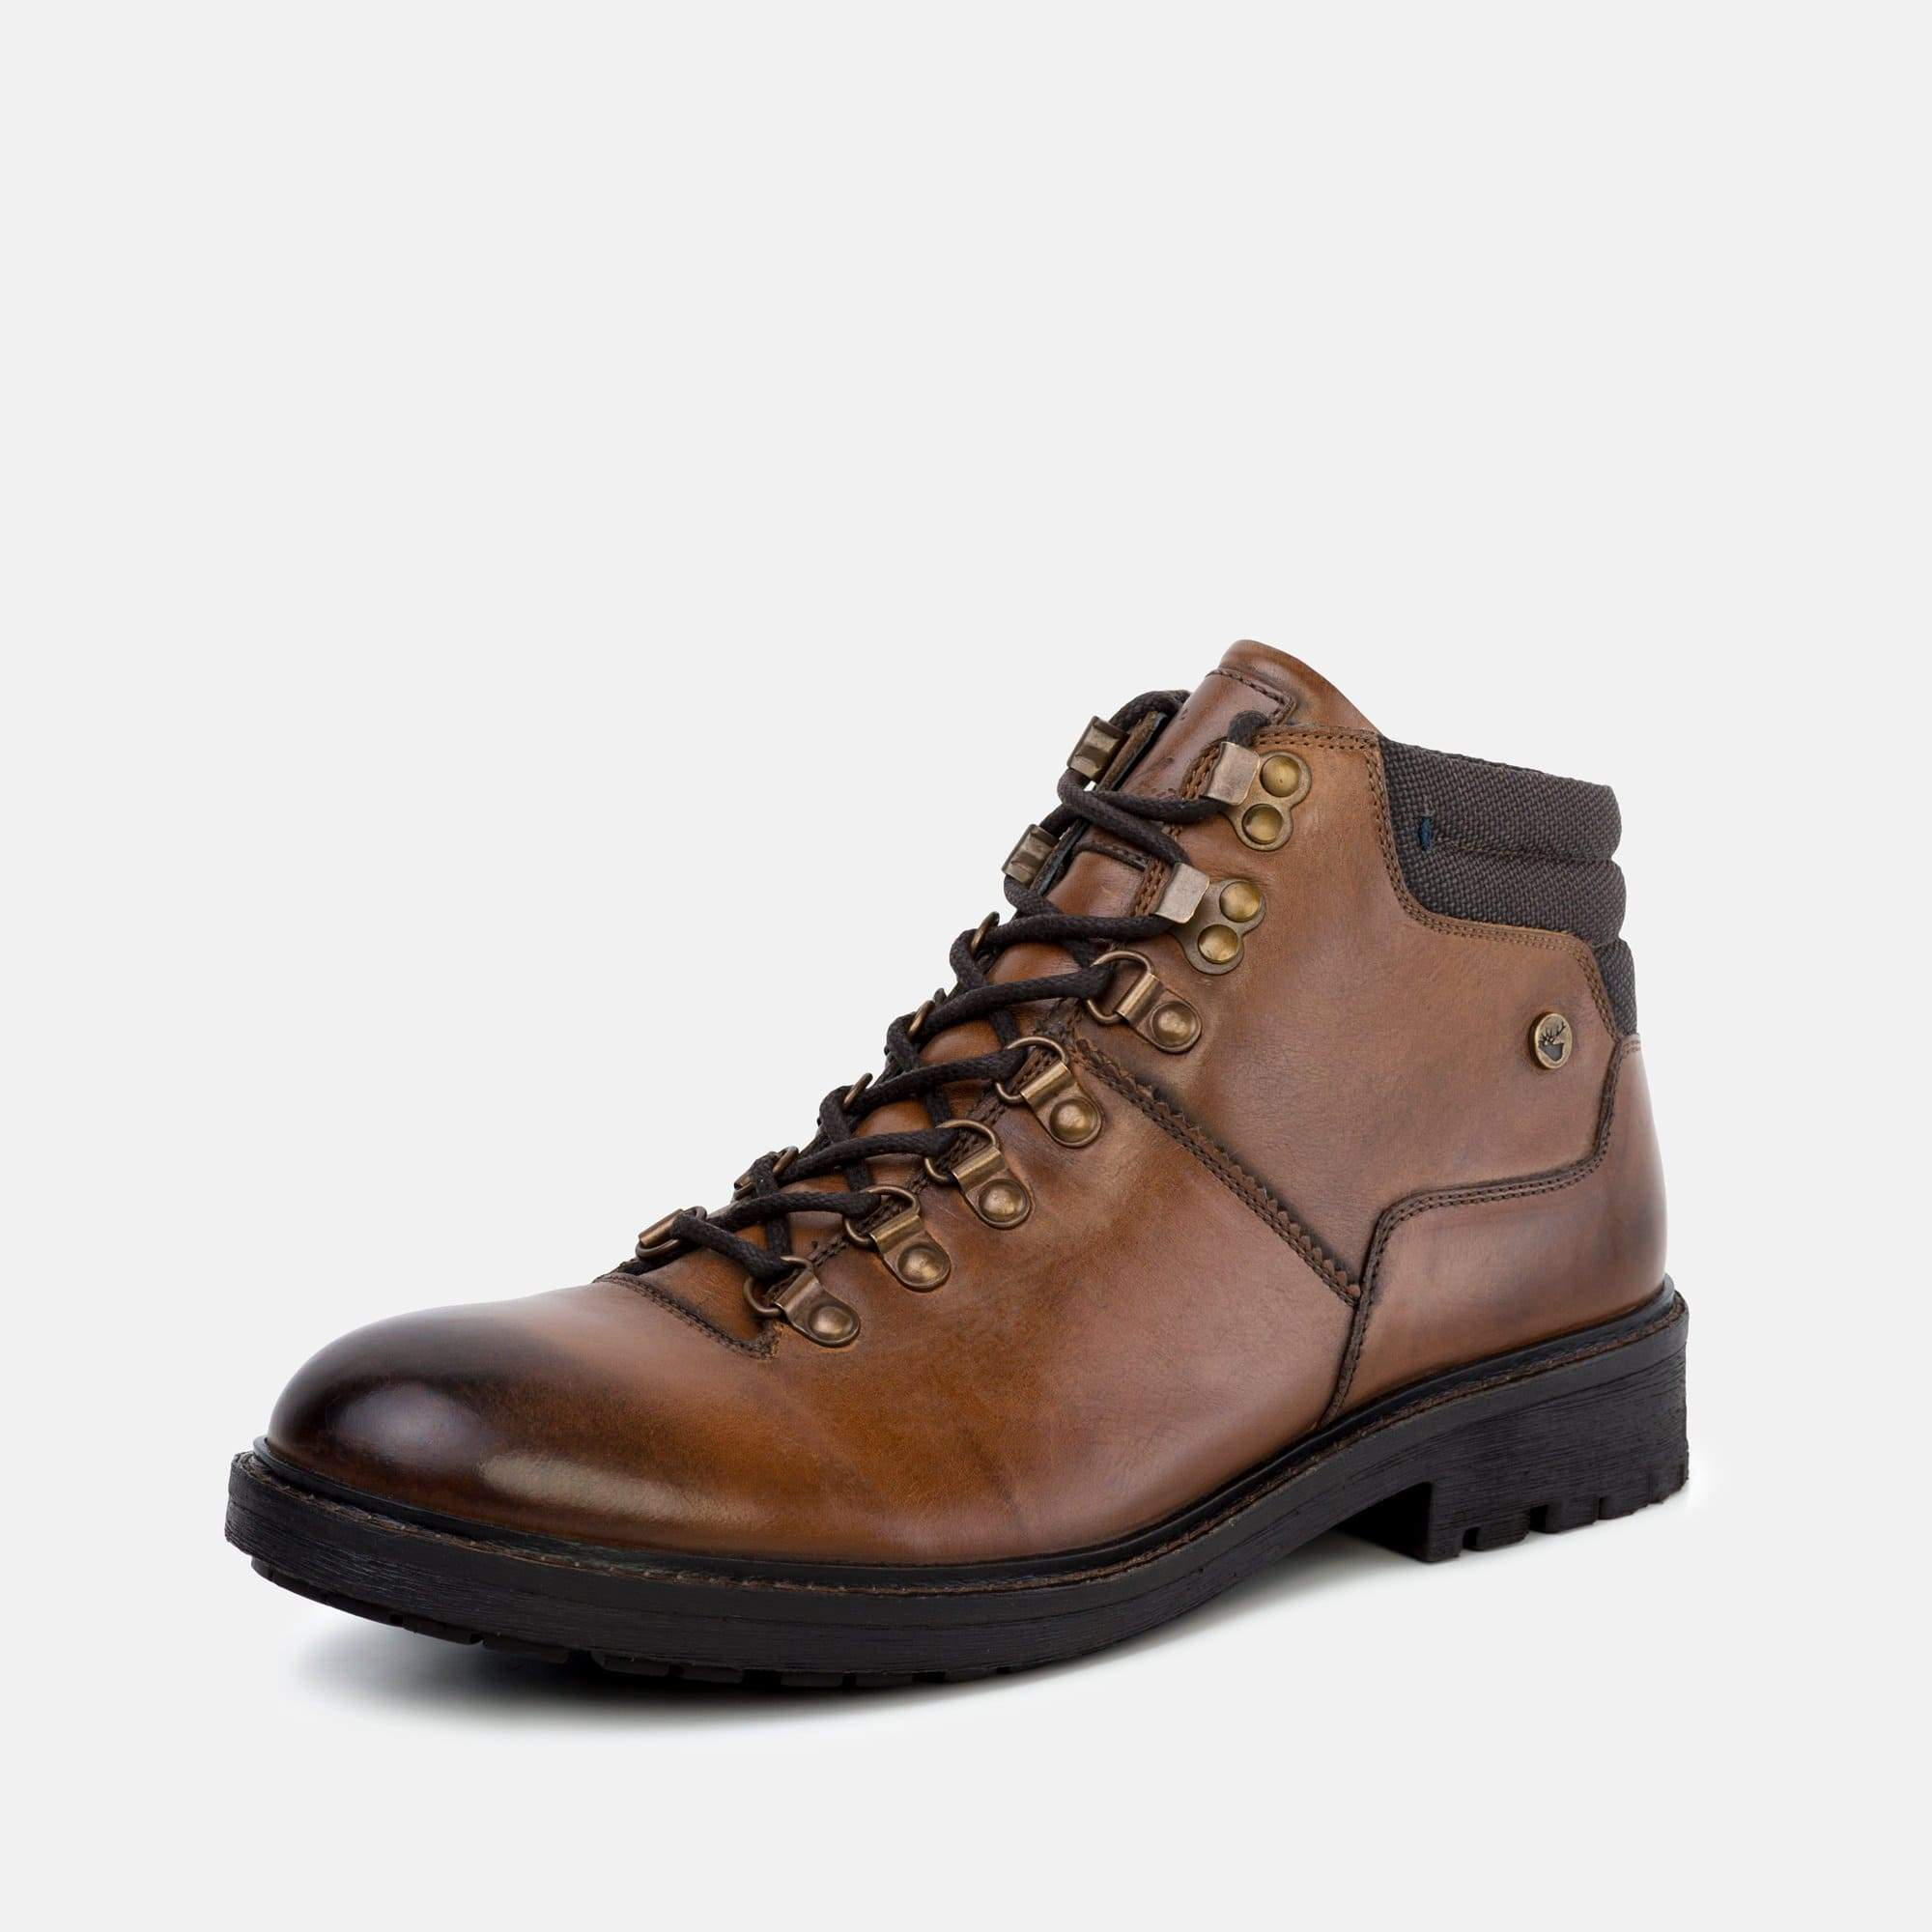 Goodwin Smith Footwear Tremont Tan Hiker Inspired Leather Boot